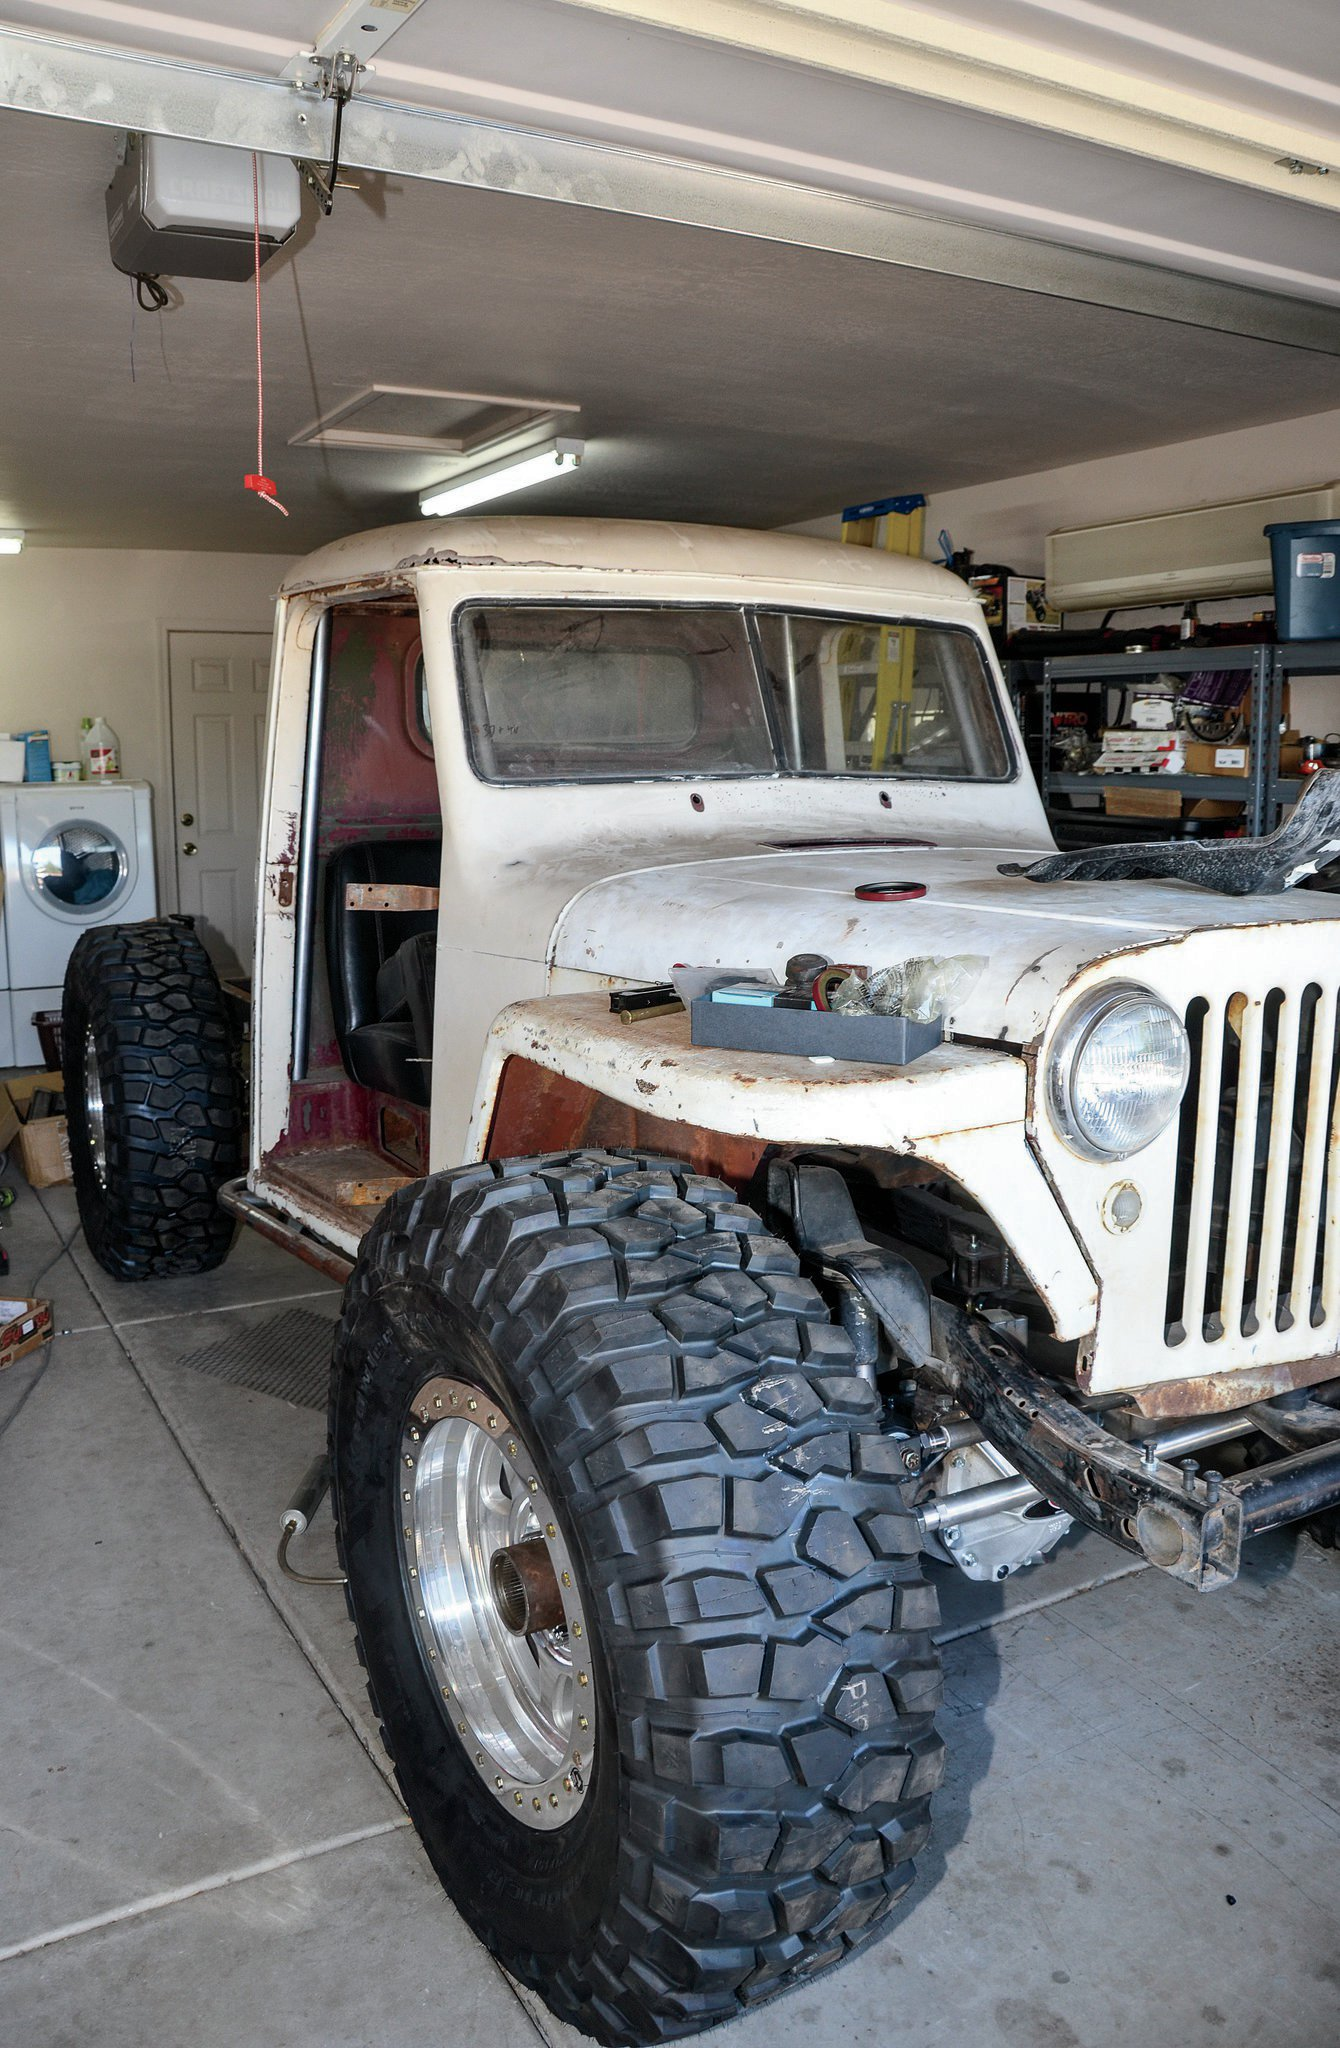 At the beginning of this article, we hinted at the fact that the Willys is now a roller. This is a huge milestone for a long-term build like this. As a teaser, here is the big truck on the tires at full bump. More to come.